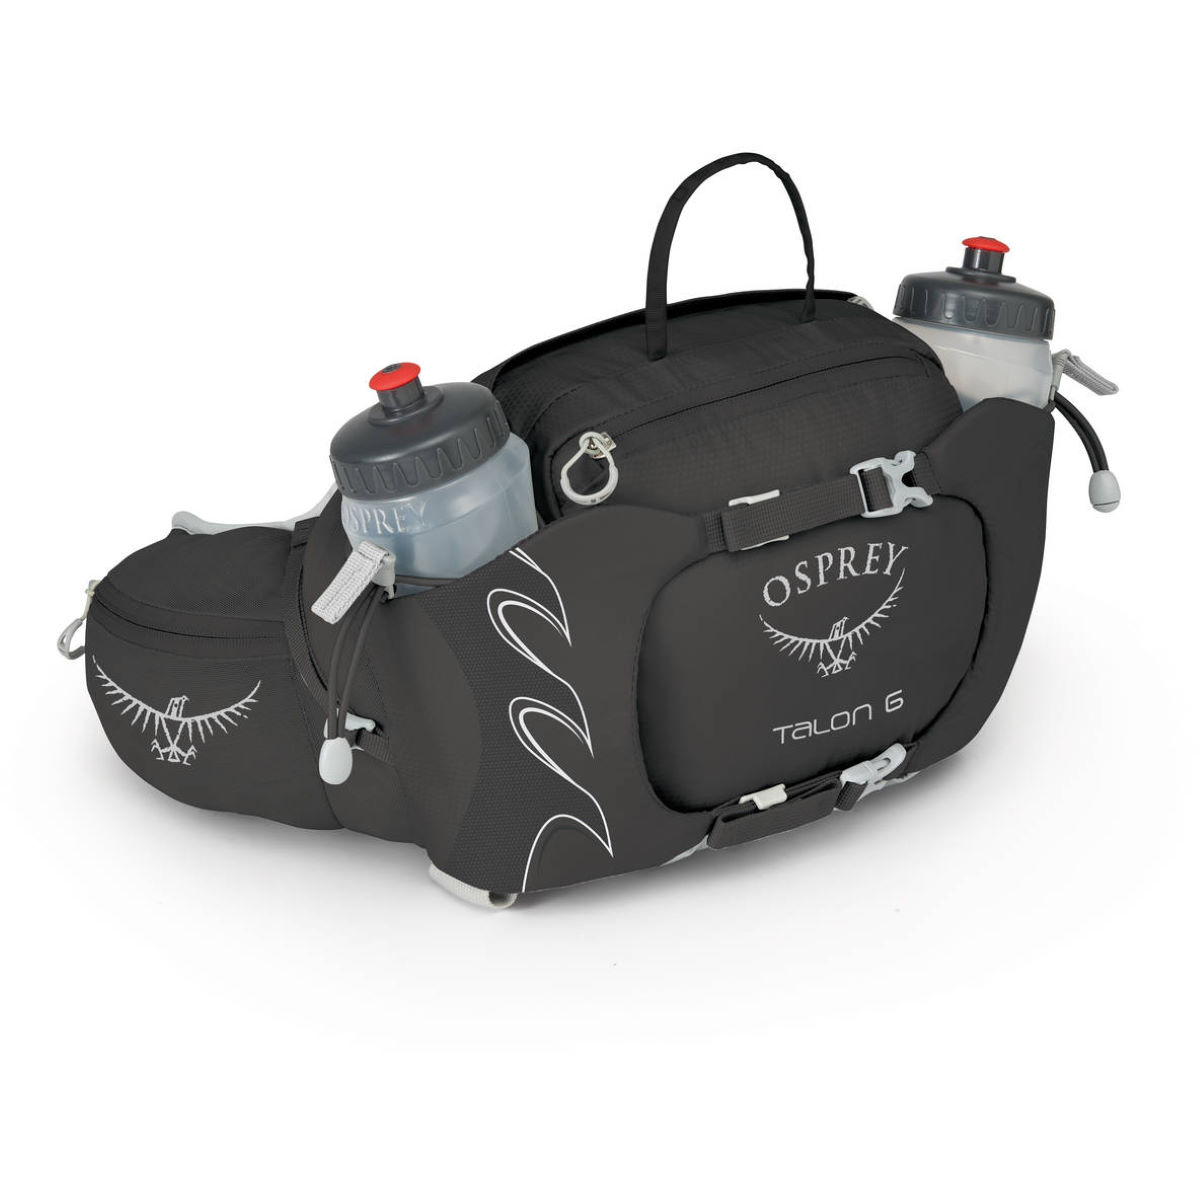 Osprey Osprey Talon 6 Lumbar Waist Pack   Hydration Packs